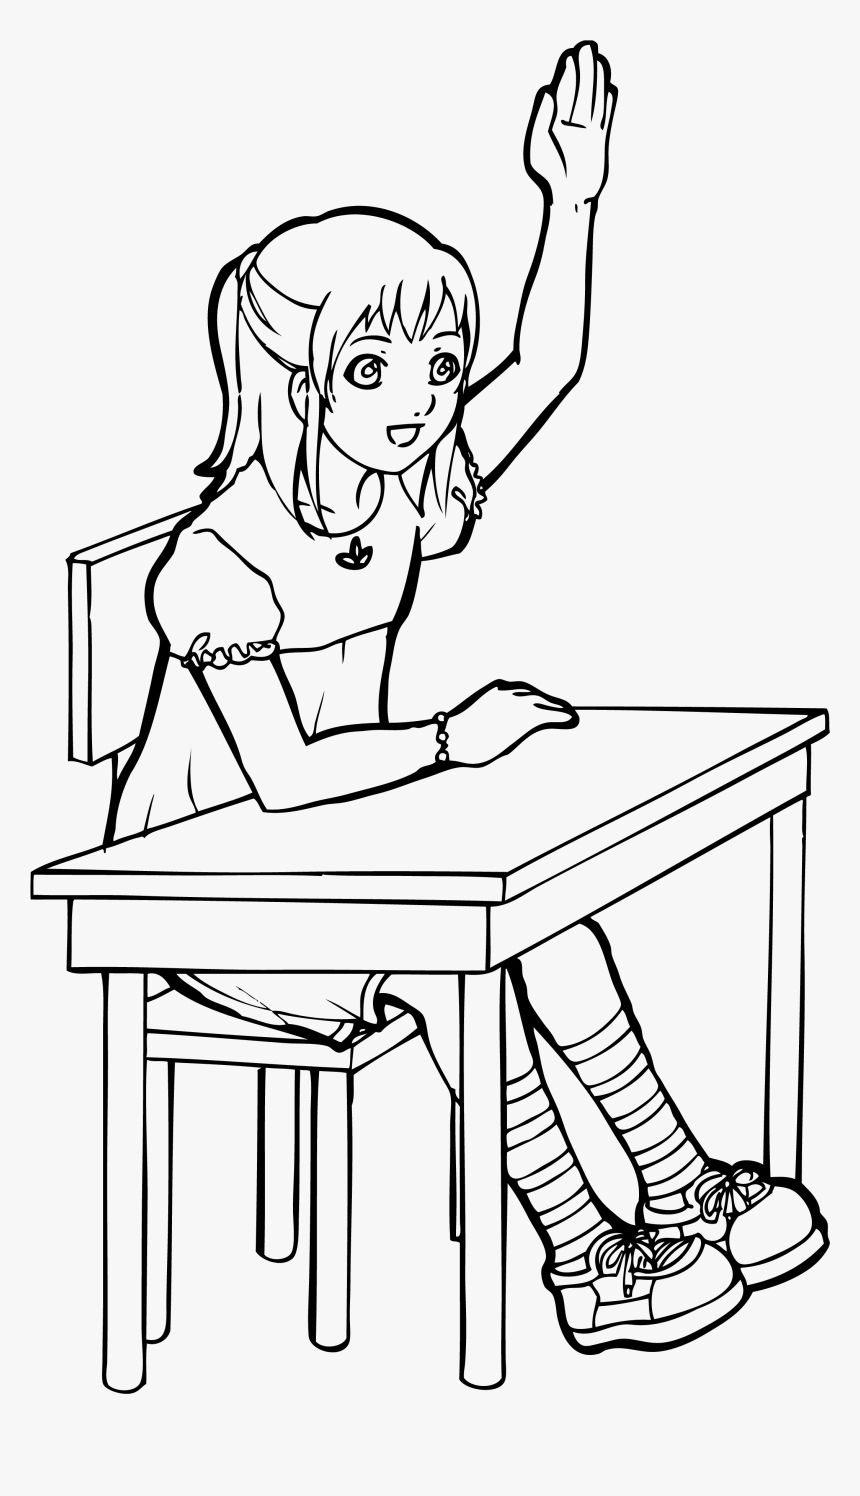 Student Clipart Black And White Ideas In 2021 Student Clipart Clipart Black And White Clip Art